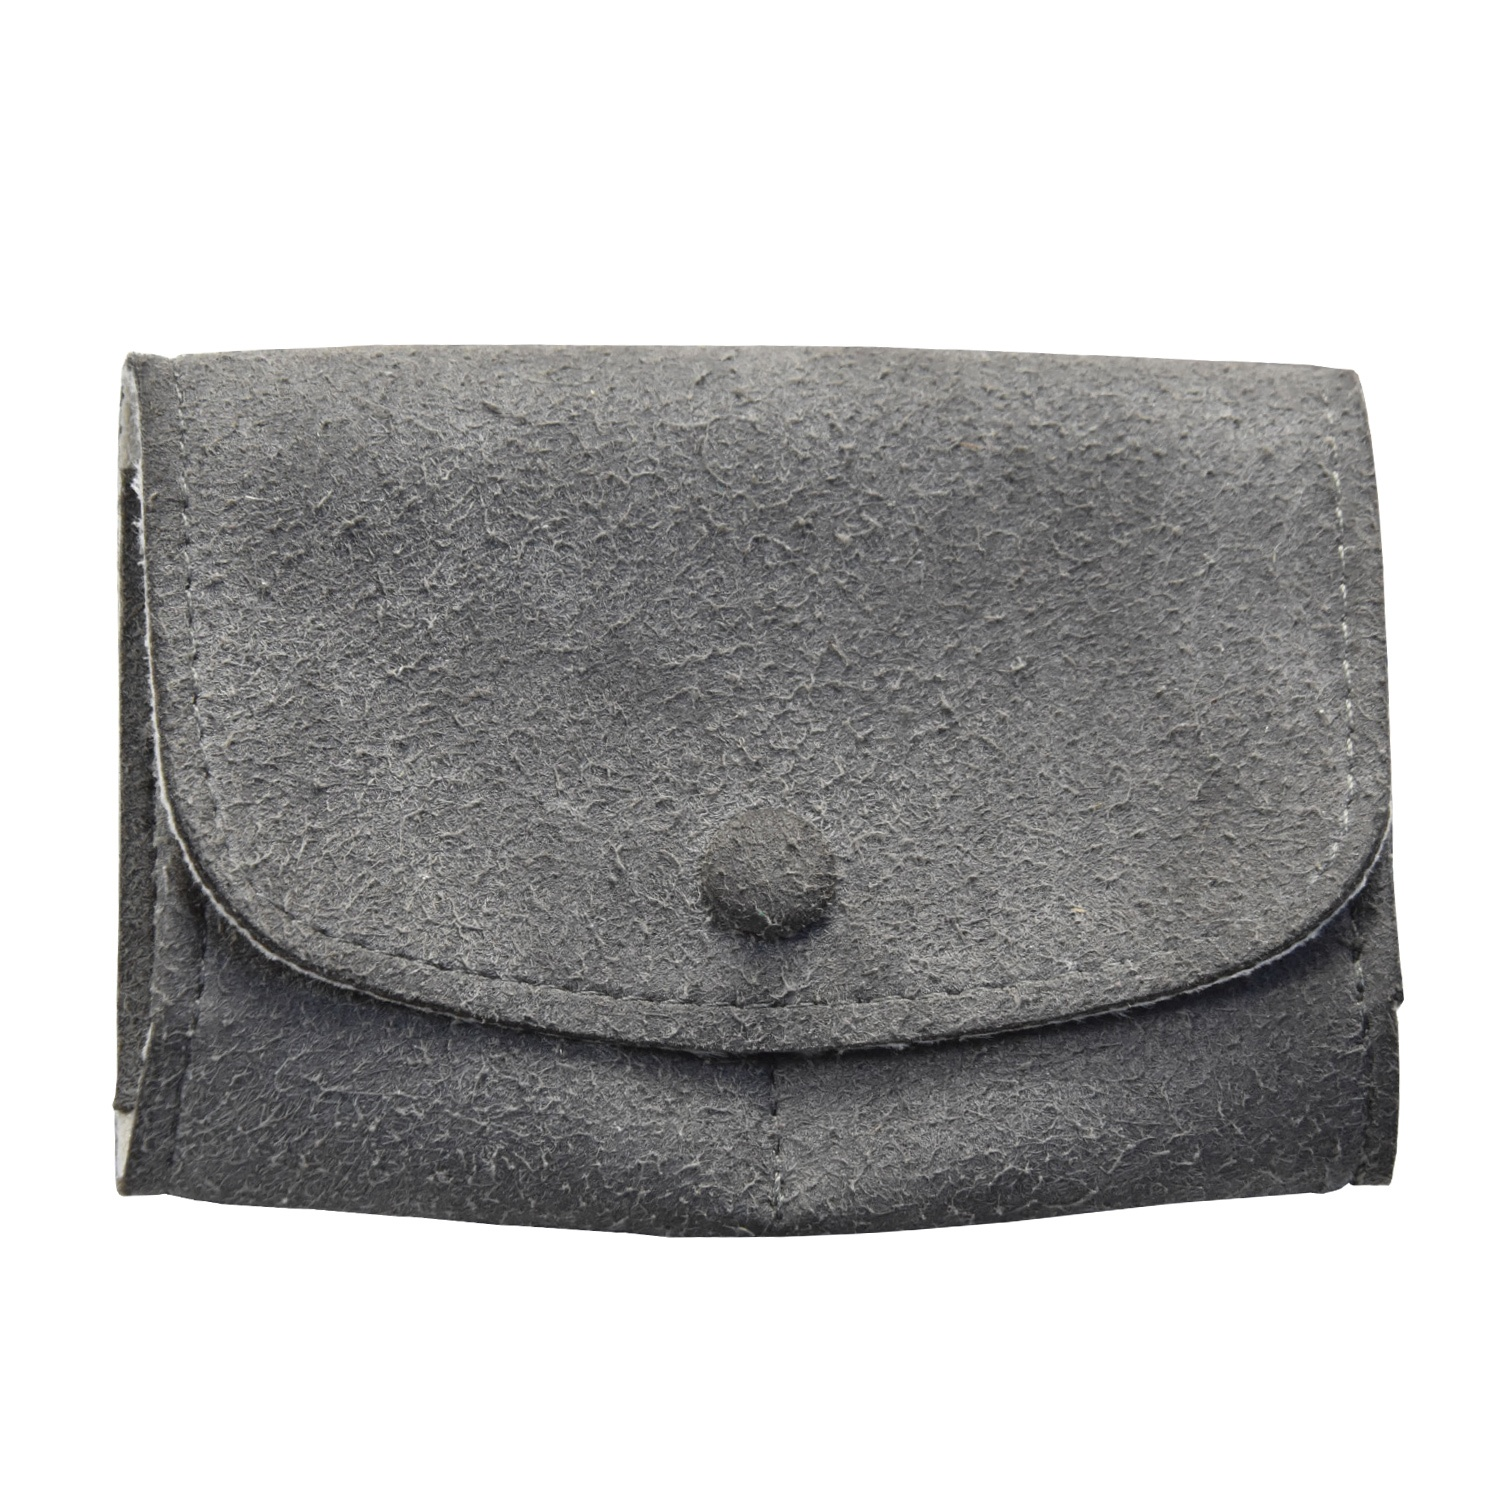 Womens soft leather cosmetic bag for handmade leather bag make up bag leather